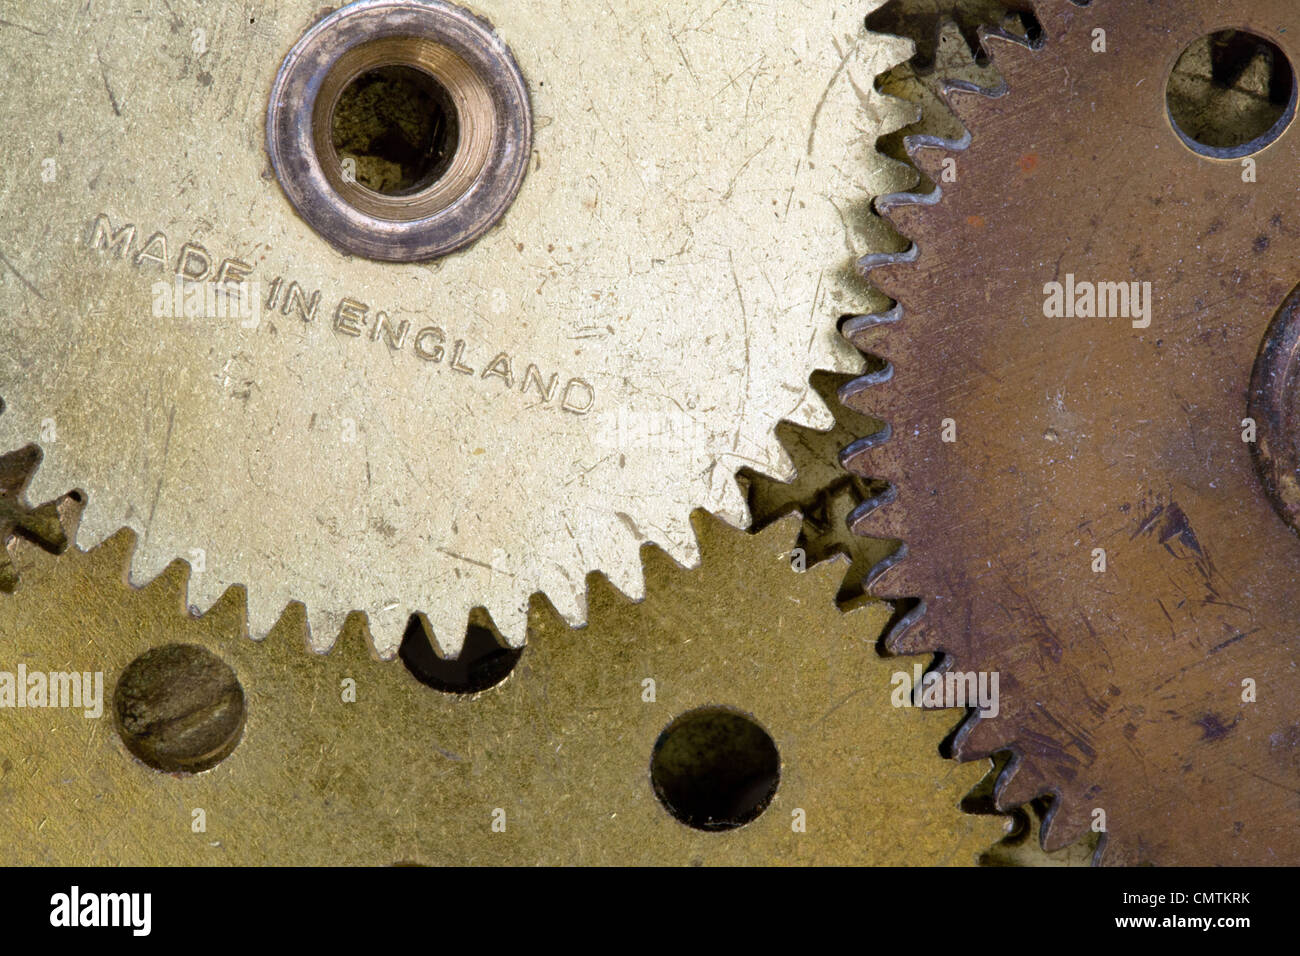 Gears in close up inscribed with Made In England - Stock Image